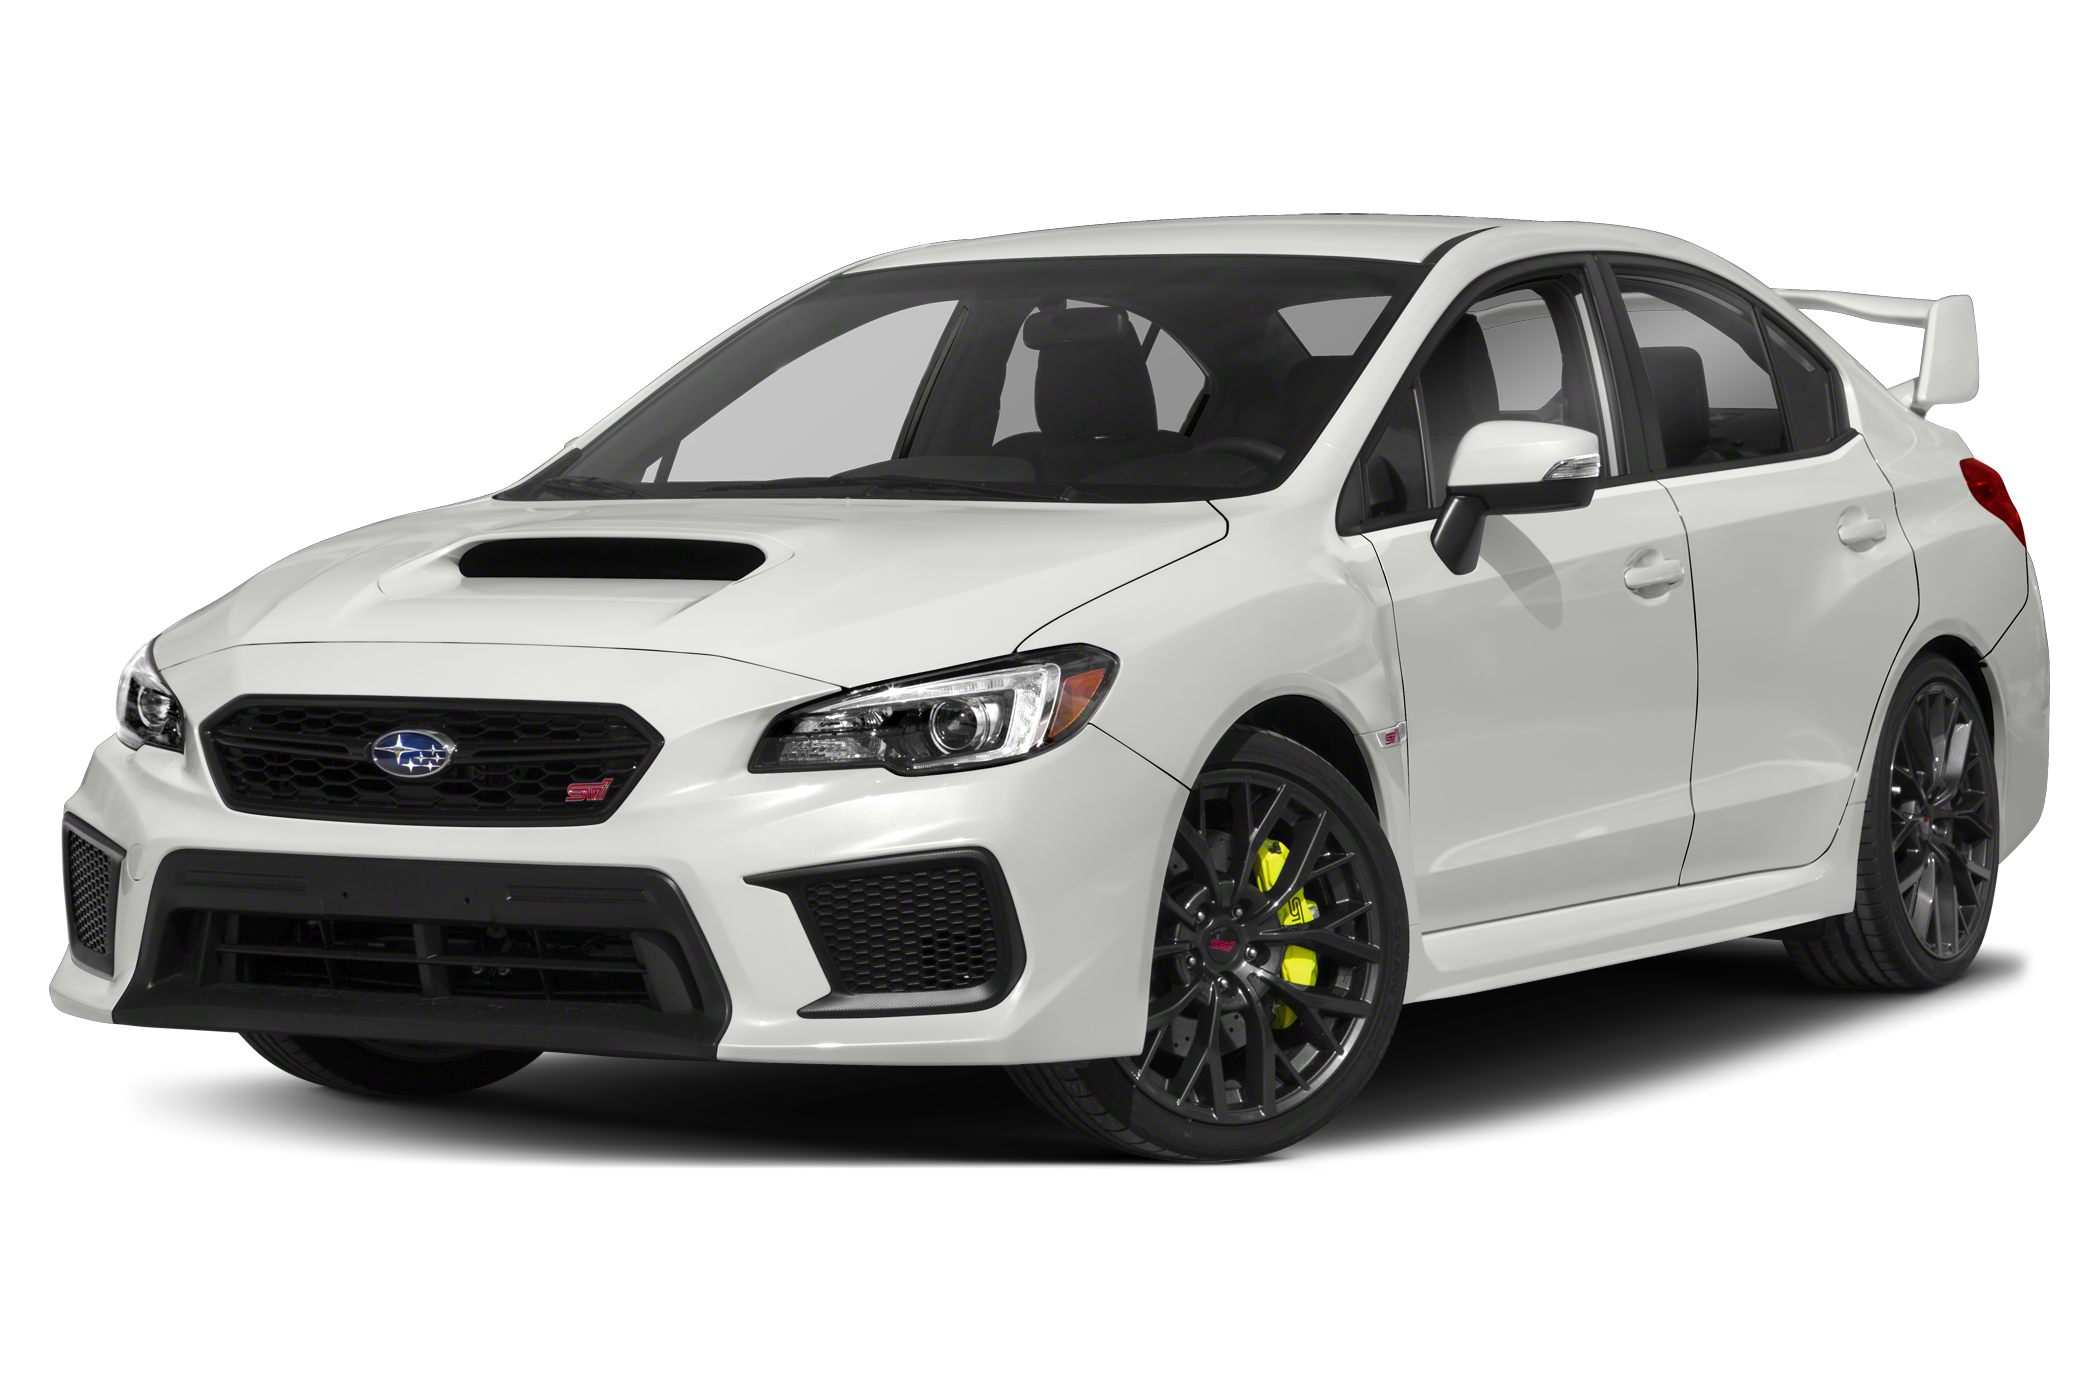 63 Best Review 2019 Subaru Sti Engine by 2019 Subaru Sti